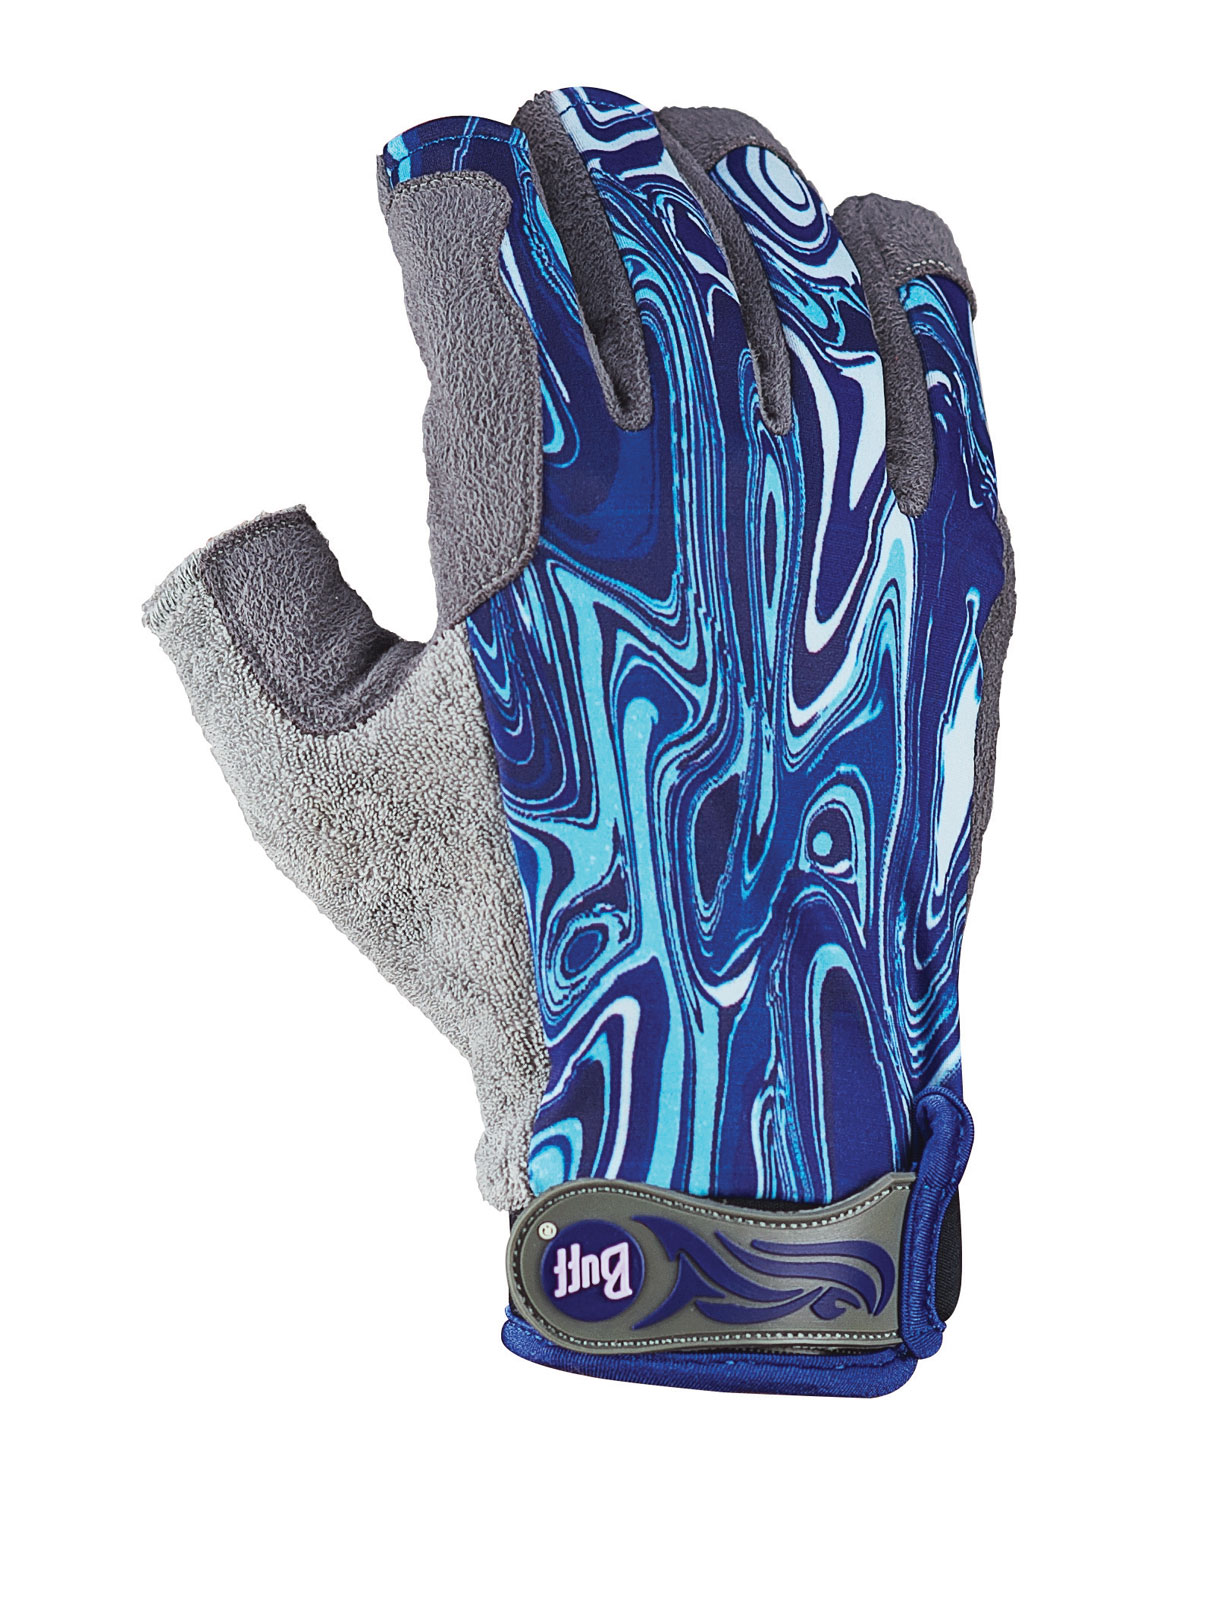 Buff pro series fly fishing fighting work angler gloves 3 for Buff fishing gloves